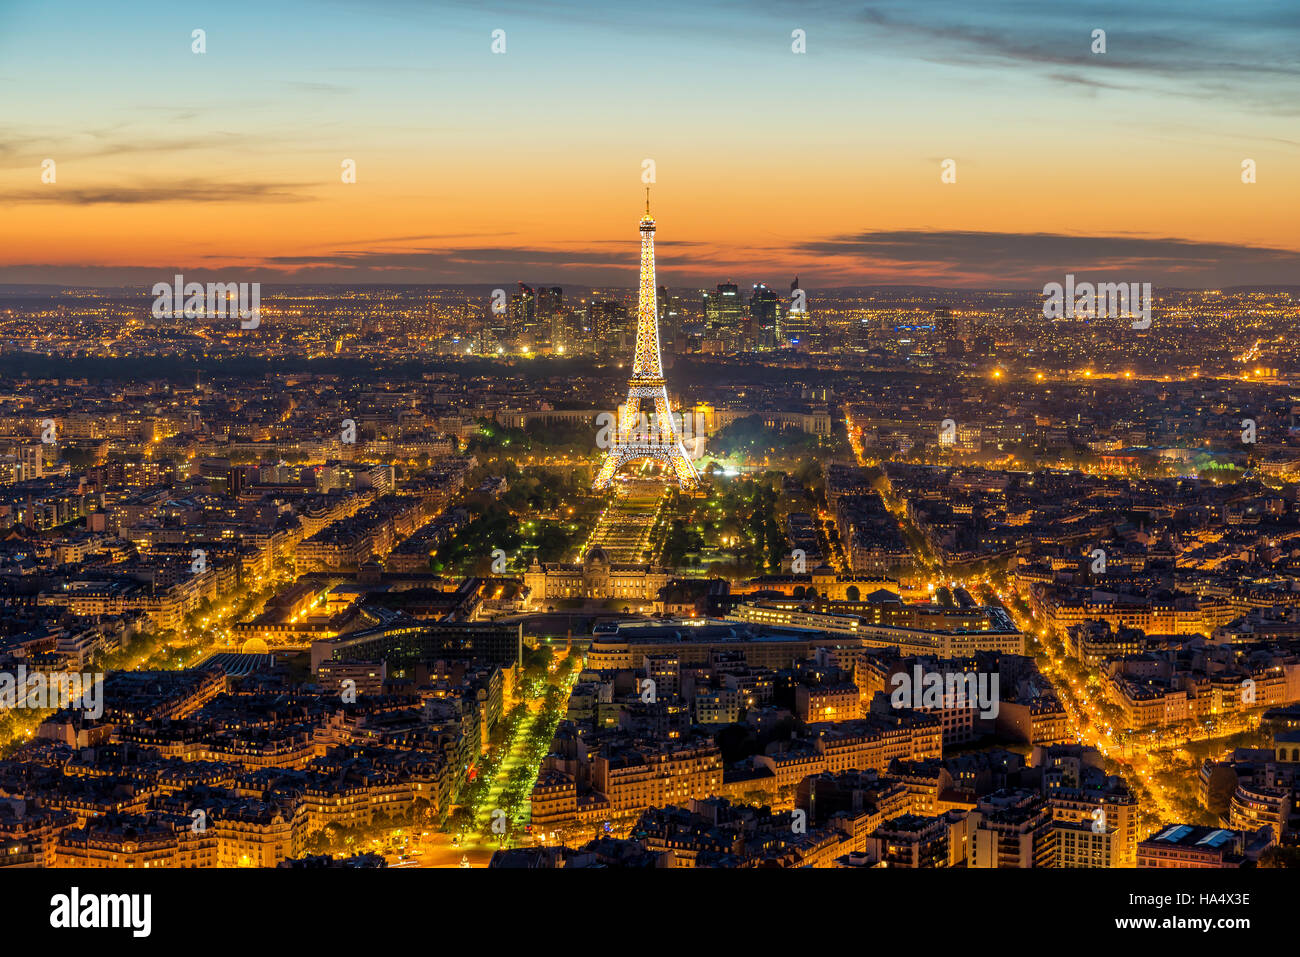 Beautiful view Eiffel tower during light show at dusk, Paris, France. Stock Photo